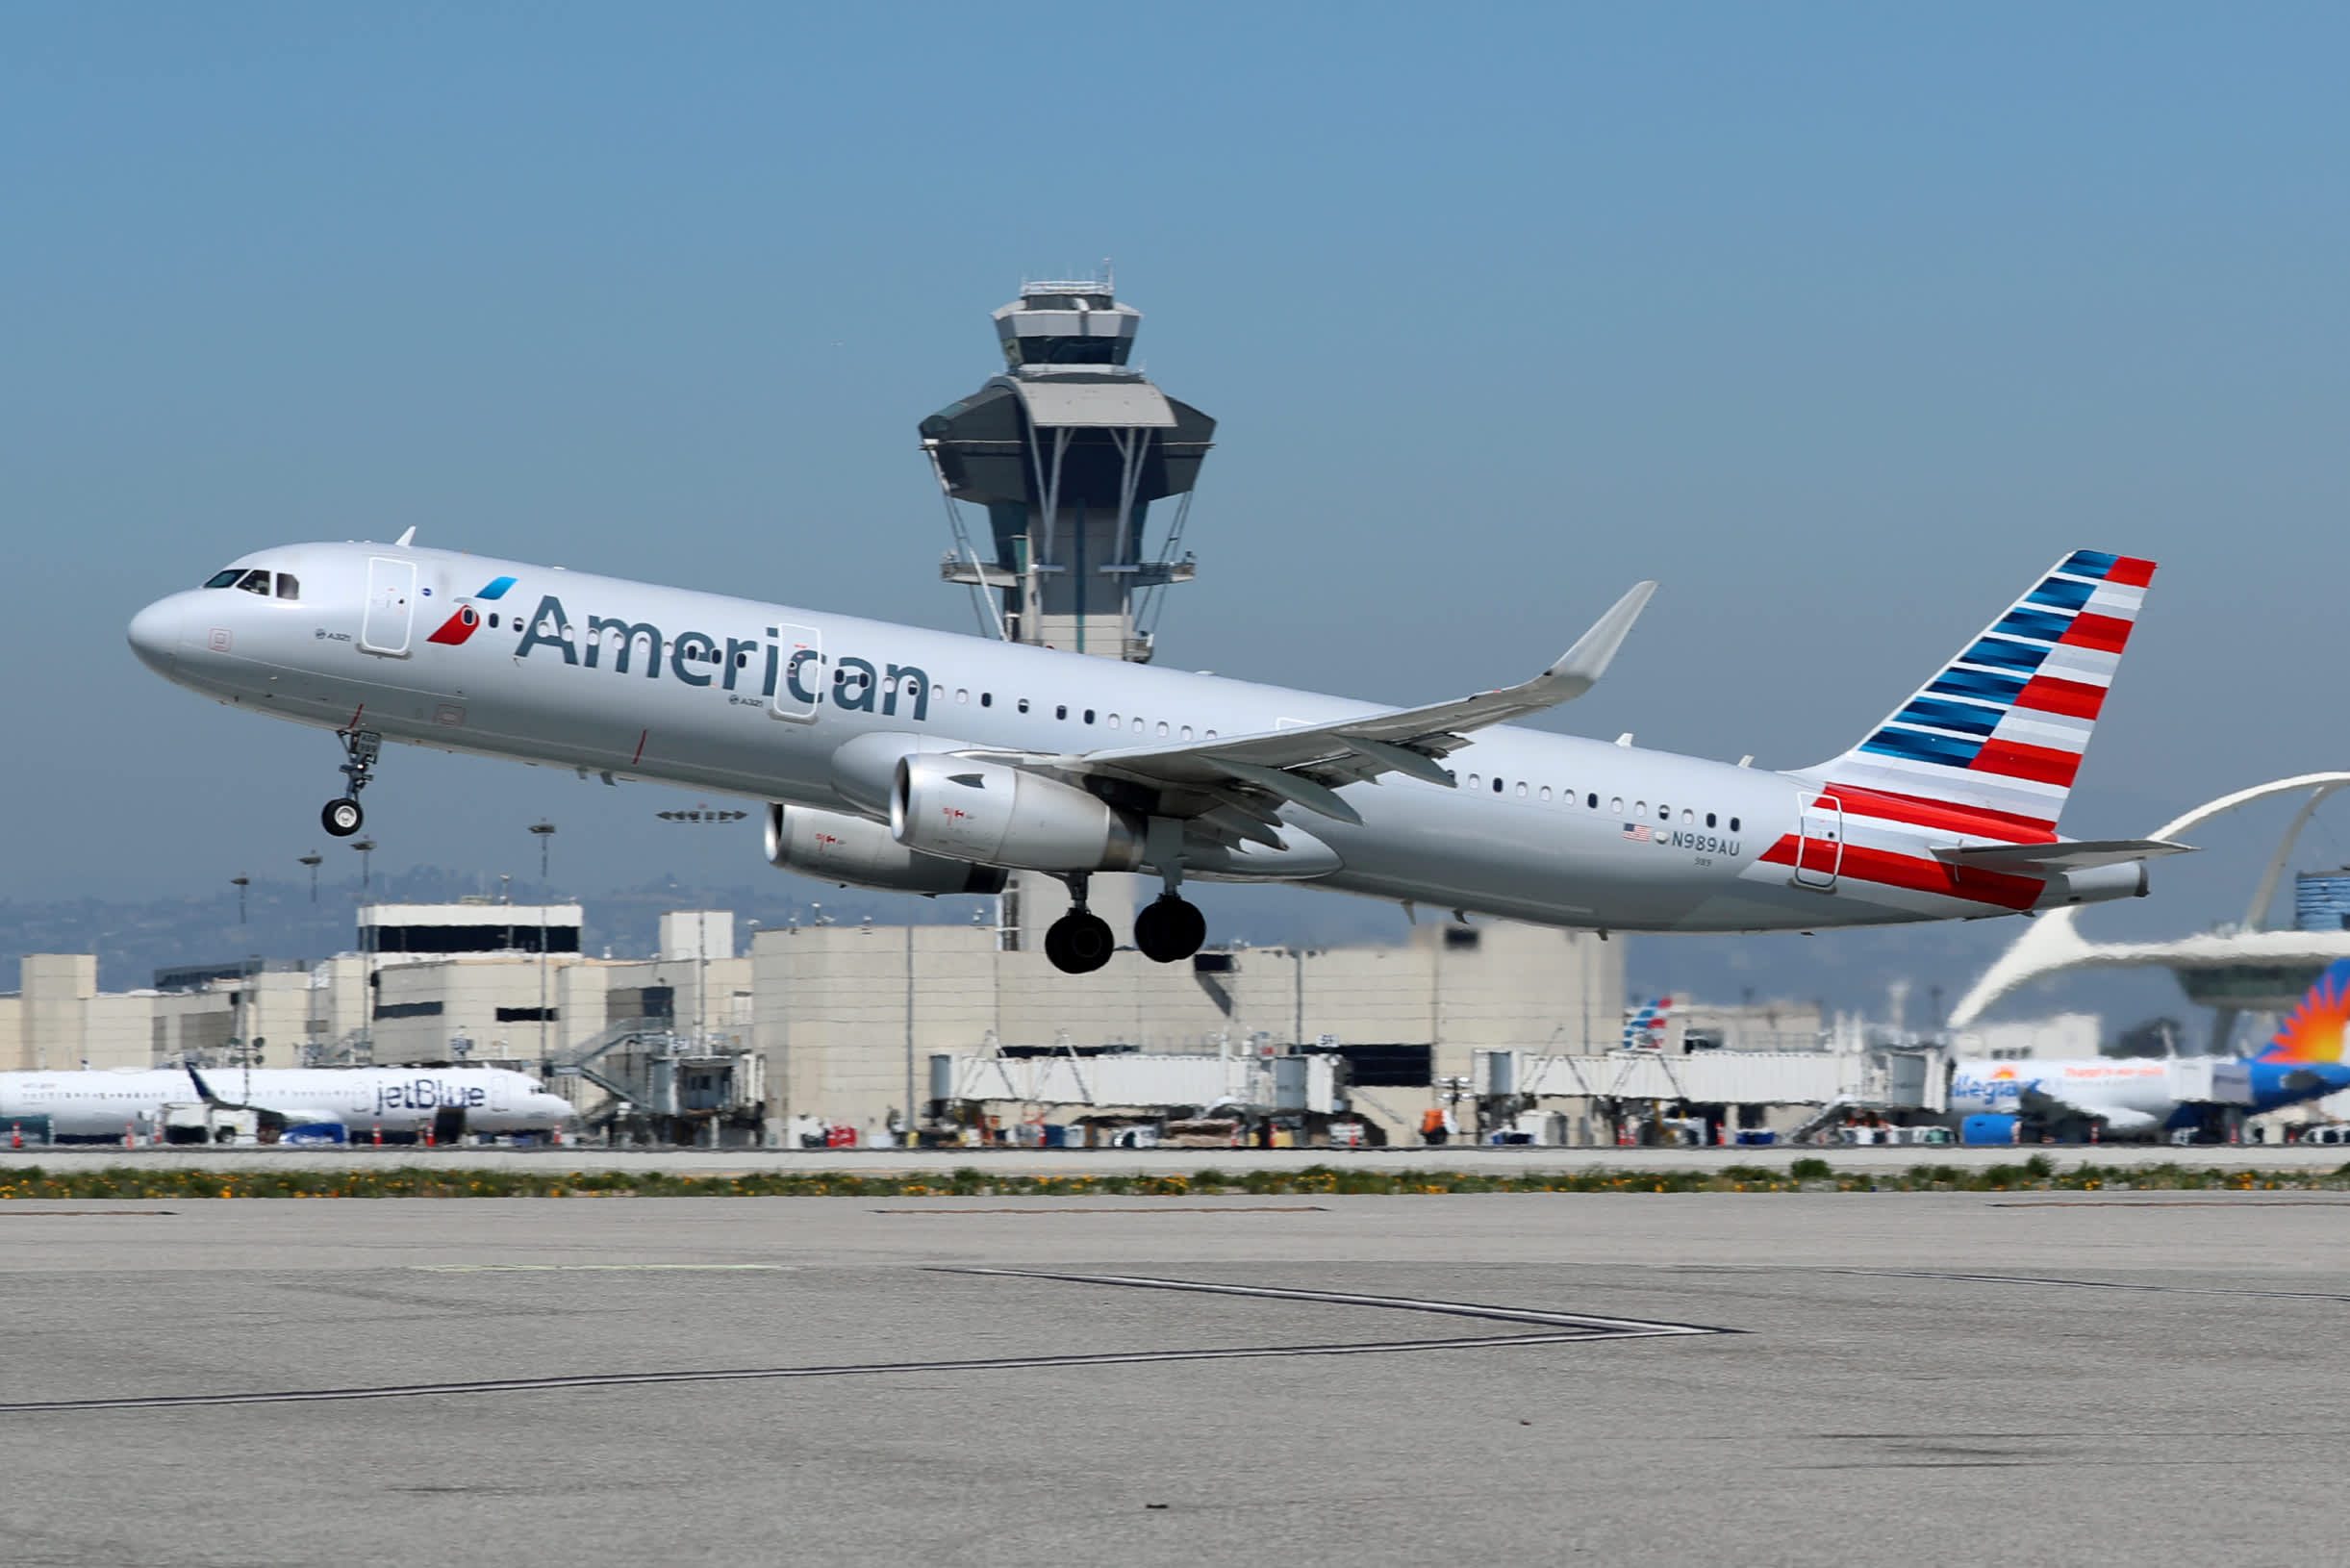 American Airlines surges after better-than-expected results, squeezing short sellers